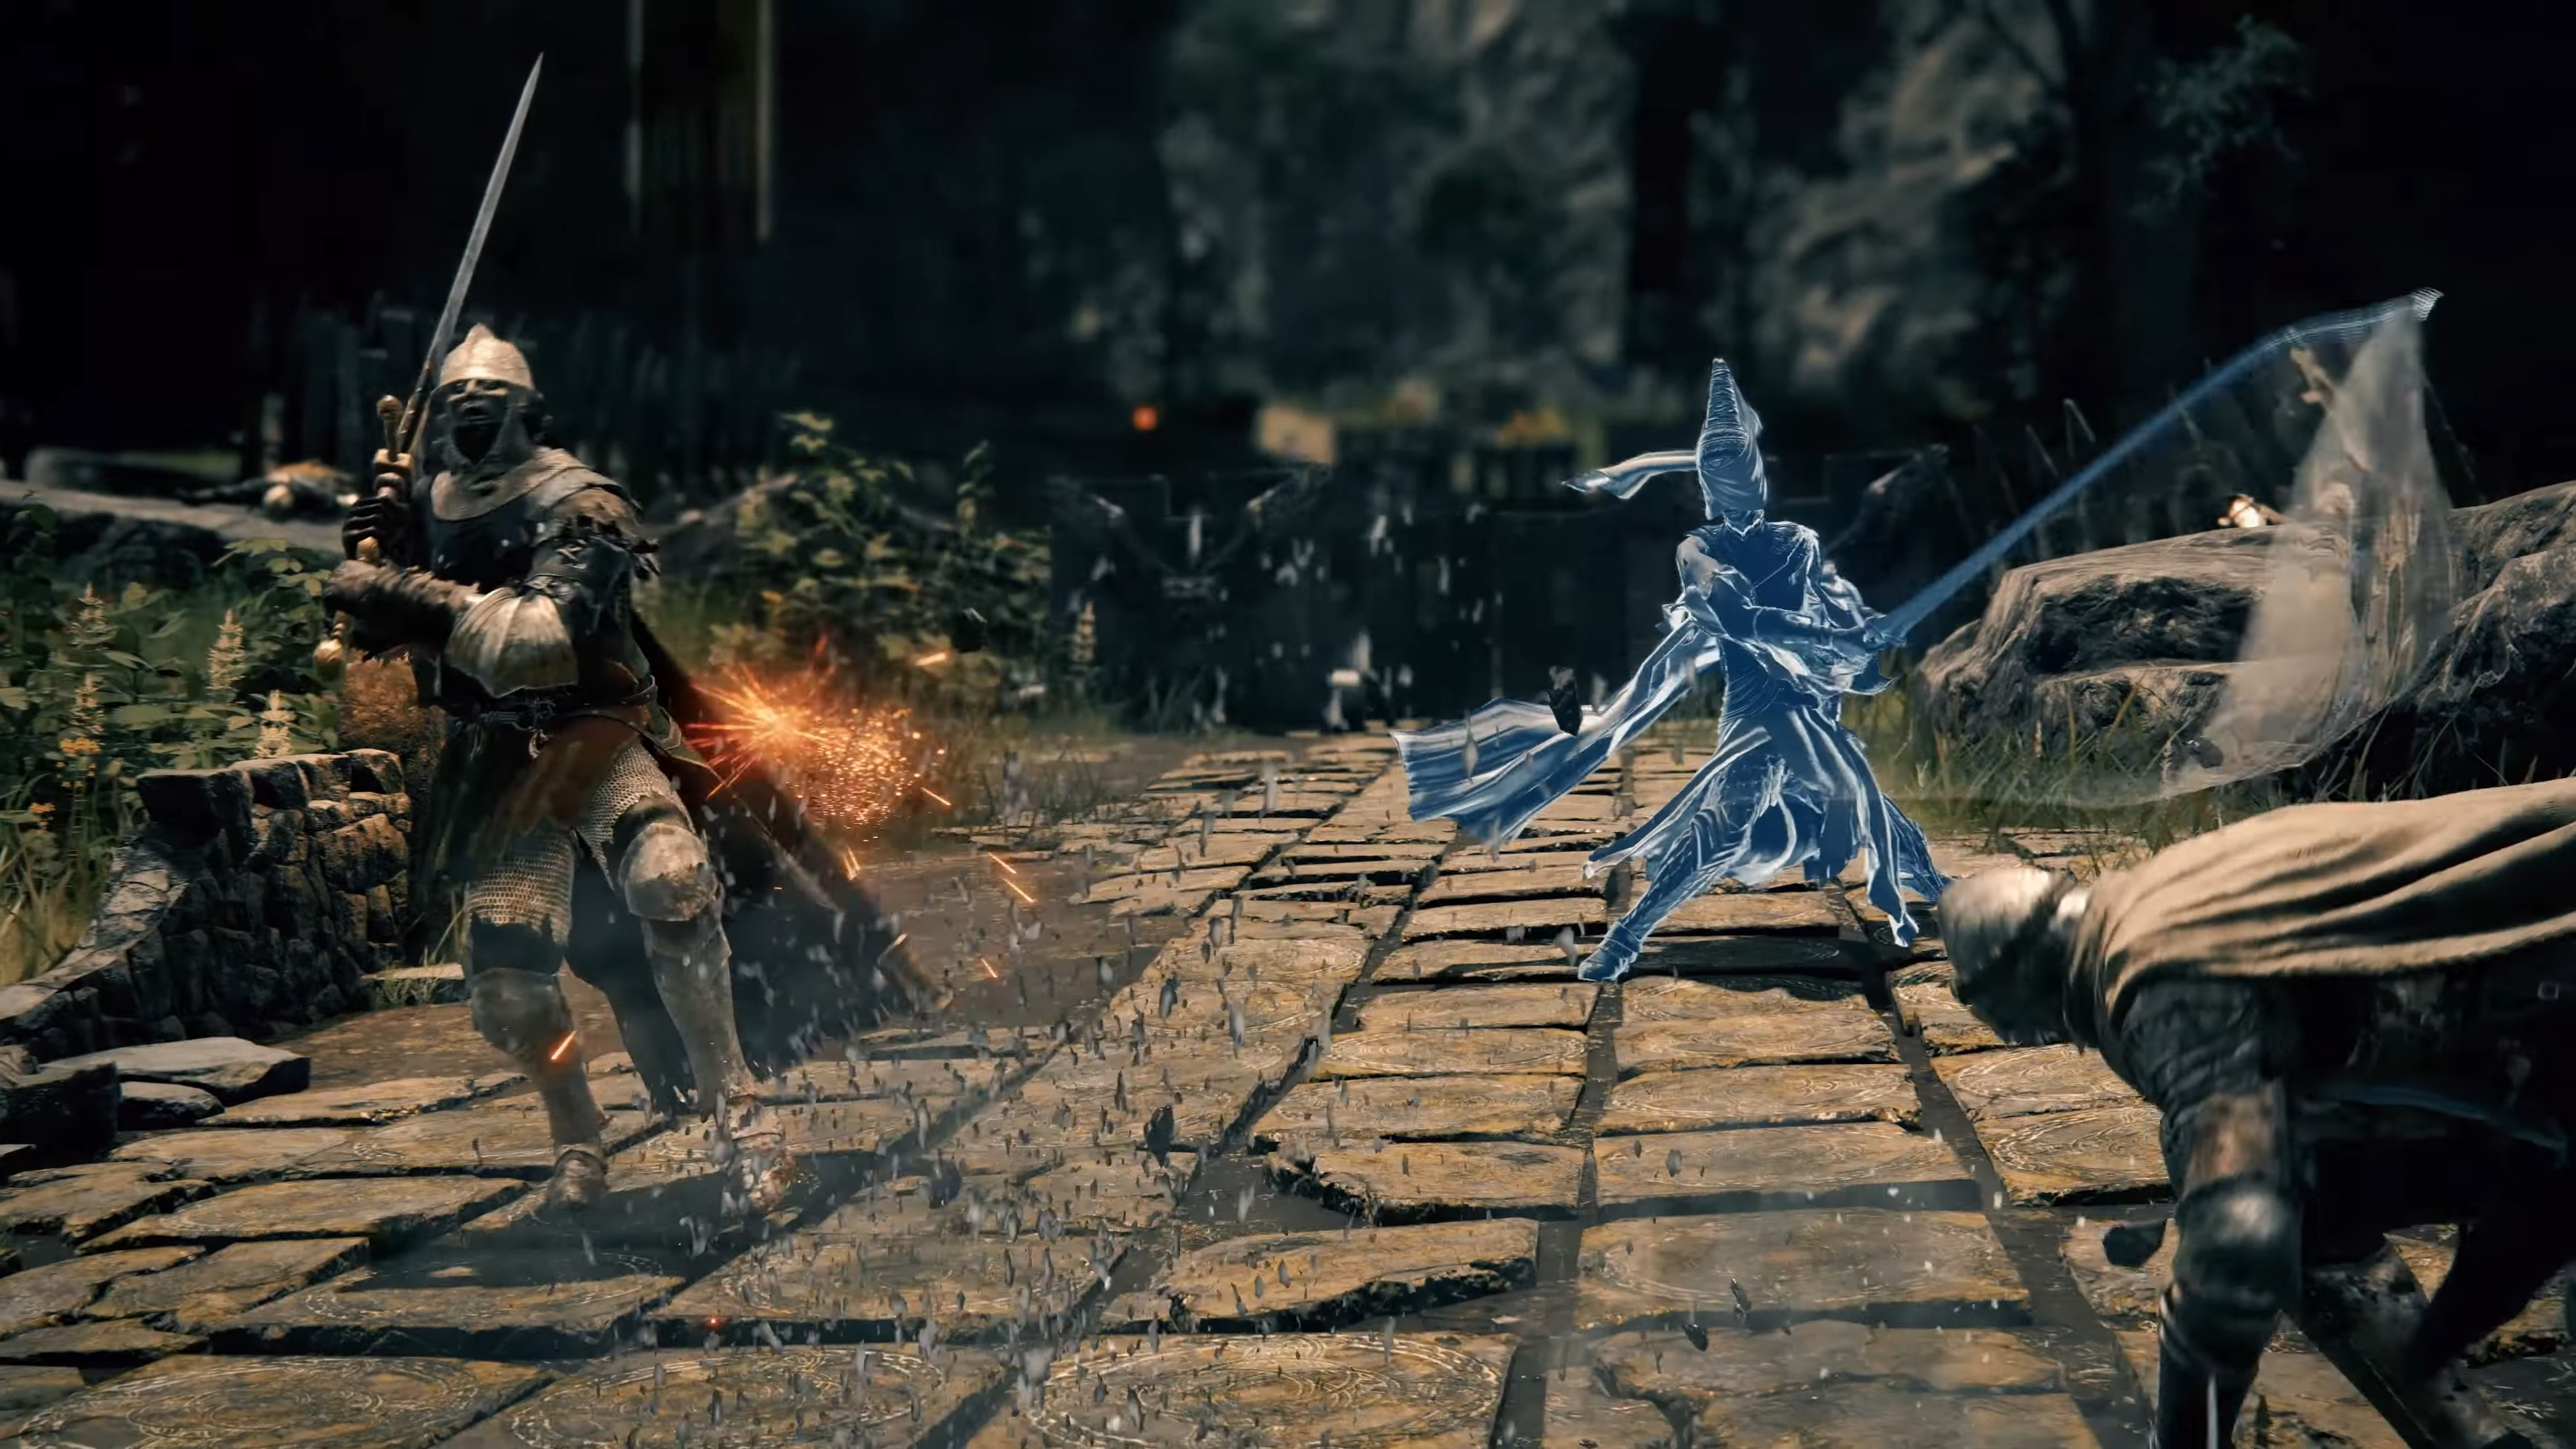 Elden Ring - Summon blue spirts to fight with you